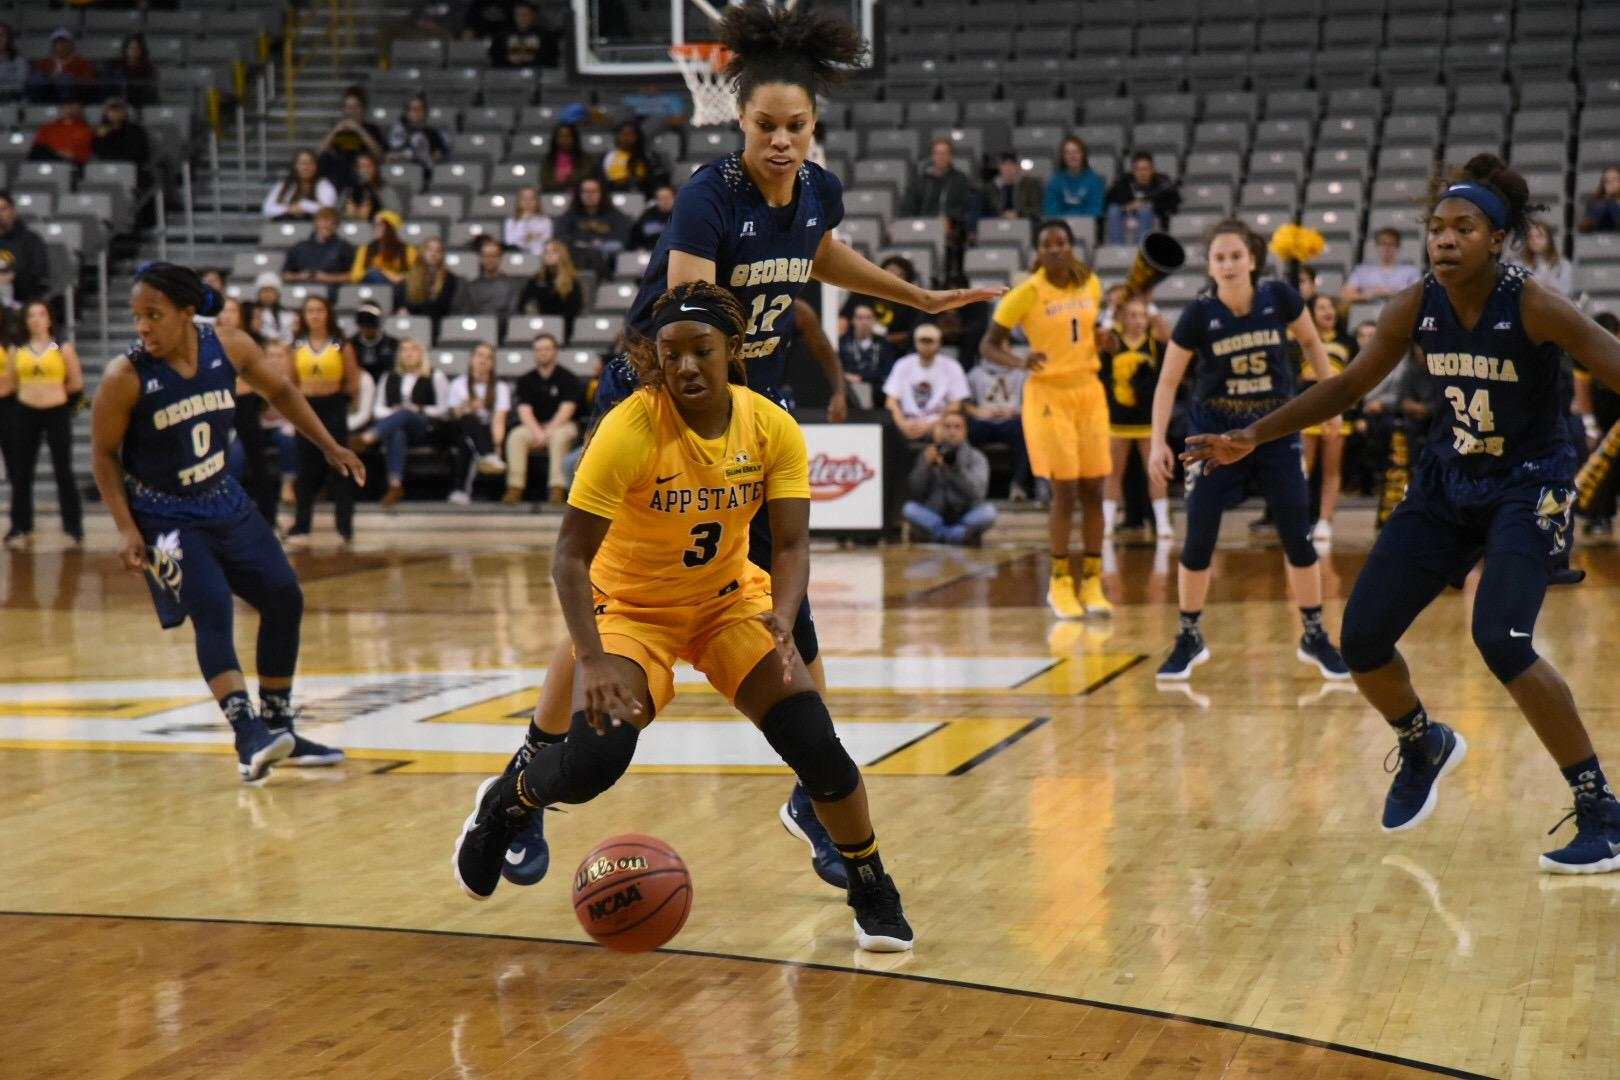 Mountaineers fall in regular season opener to ACC Yellow Jackets